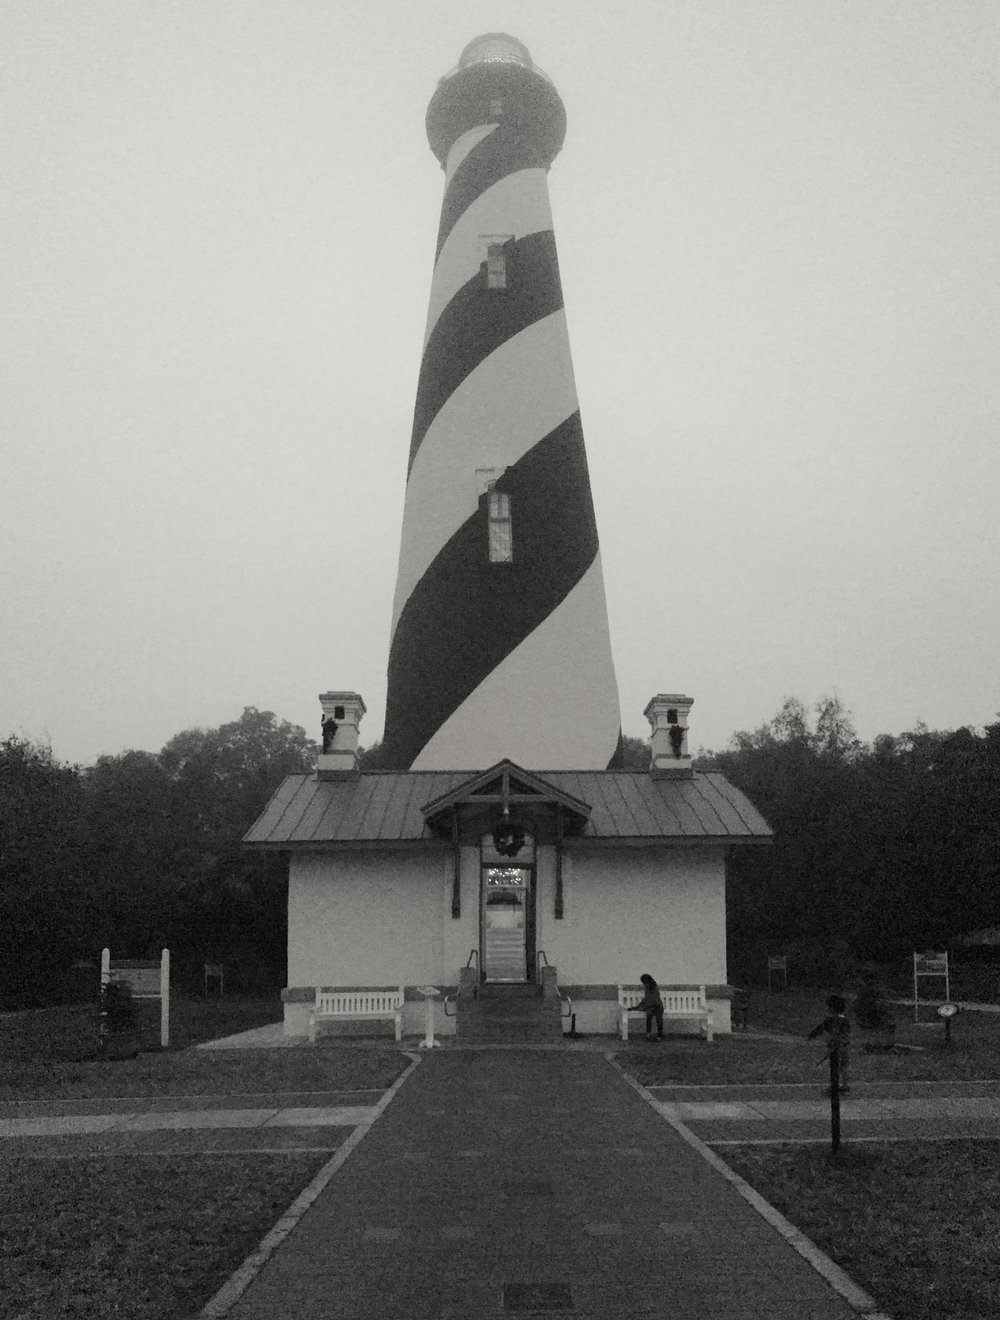 St.Augustine Light House Museum, St.Augustine Florida - Iphone 7s - VSCO film grade